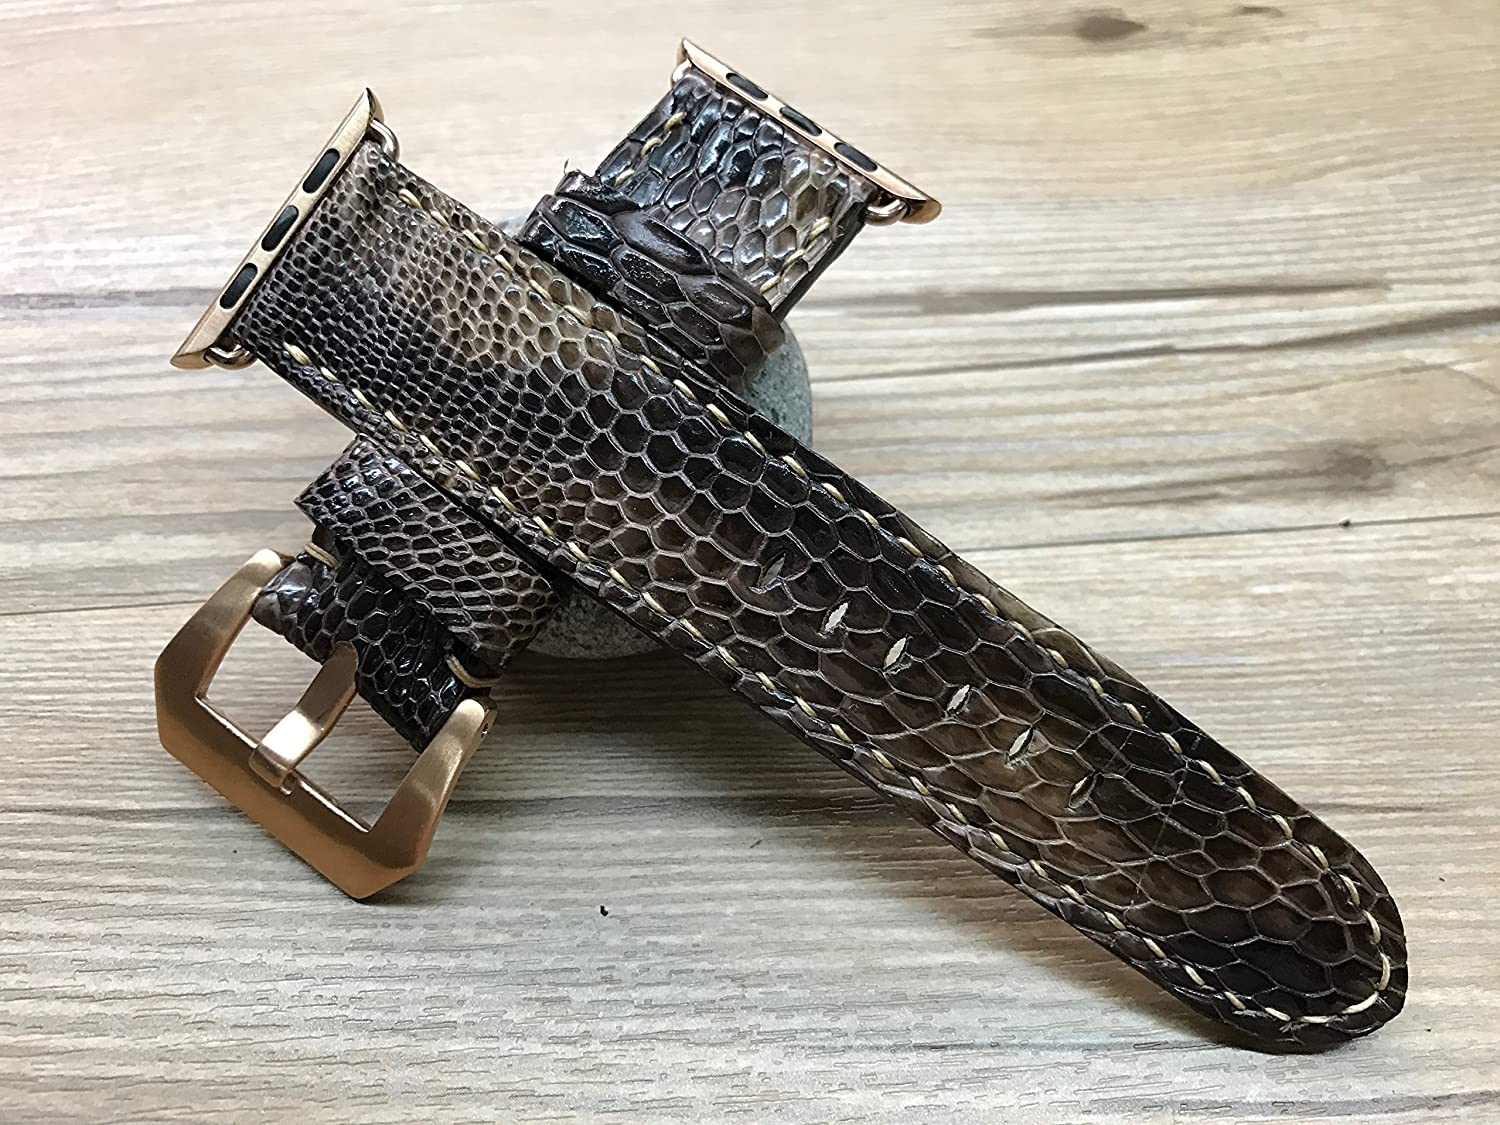 Apple Watch Band | Apple Watch Strap | Brown Hawk leg skin leather watch Strap For Apple Watch 38mm & Apple Watch 42mm - Series 1 and 2